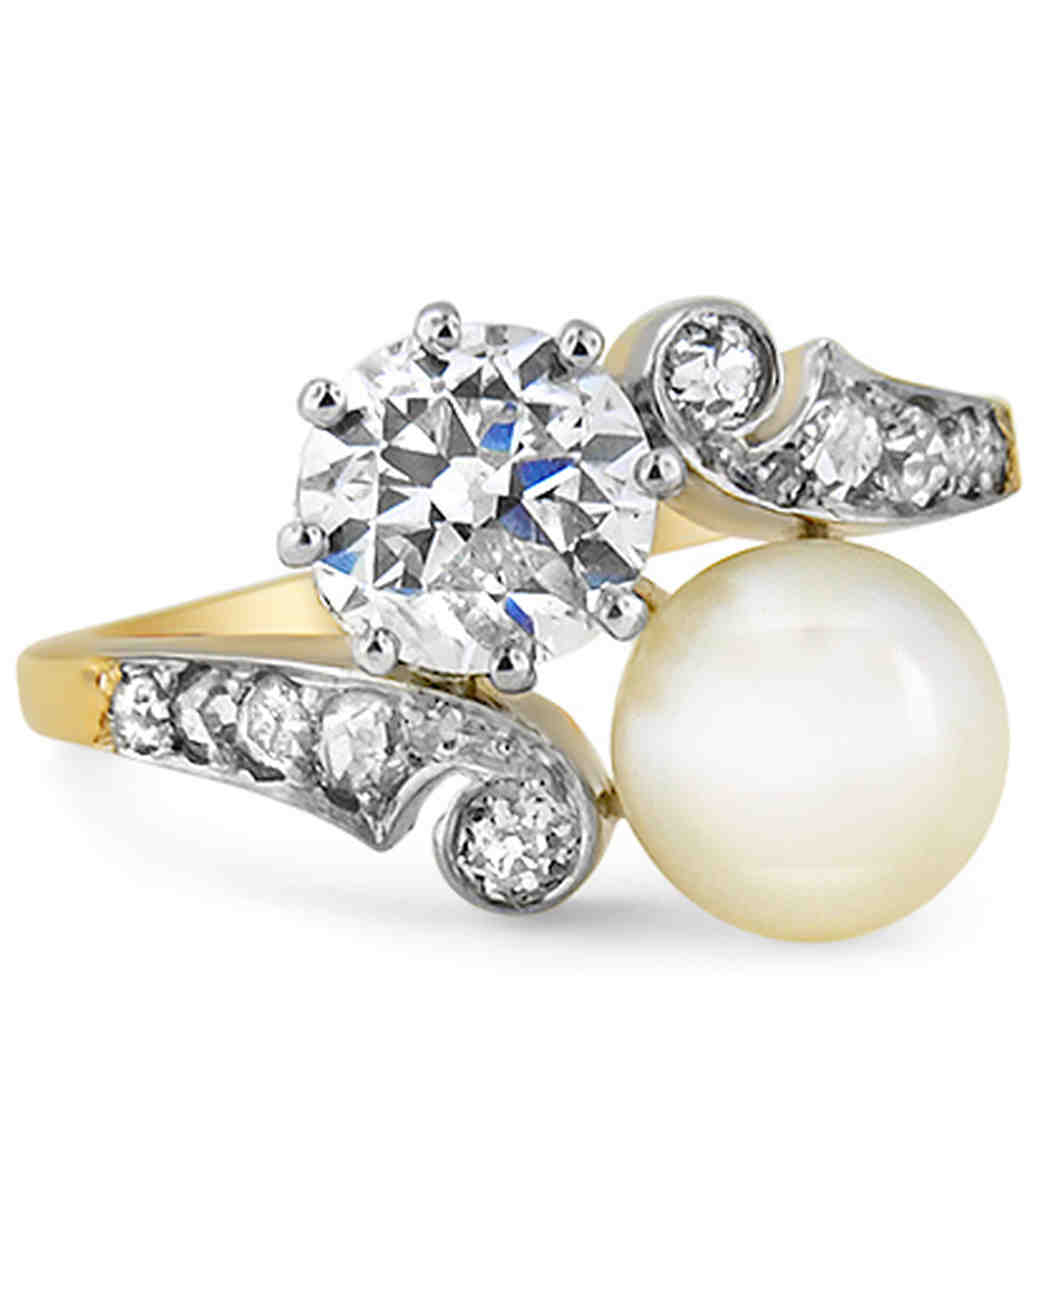 beaverbrooks pearl ring and cultured p pearls diamond gold context large engagement